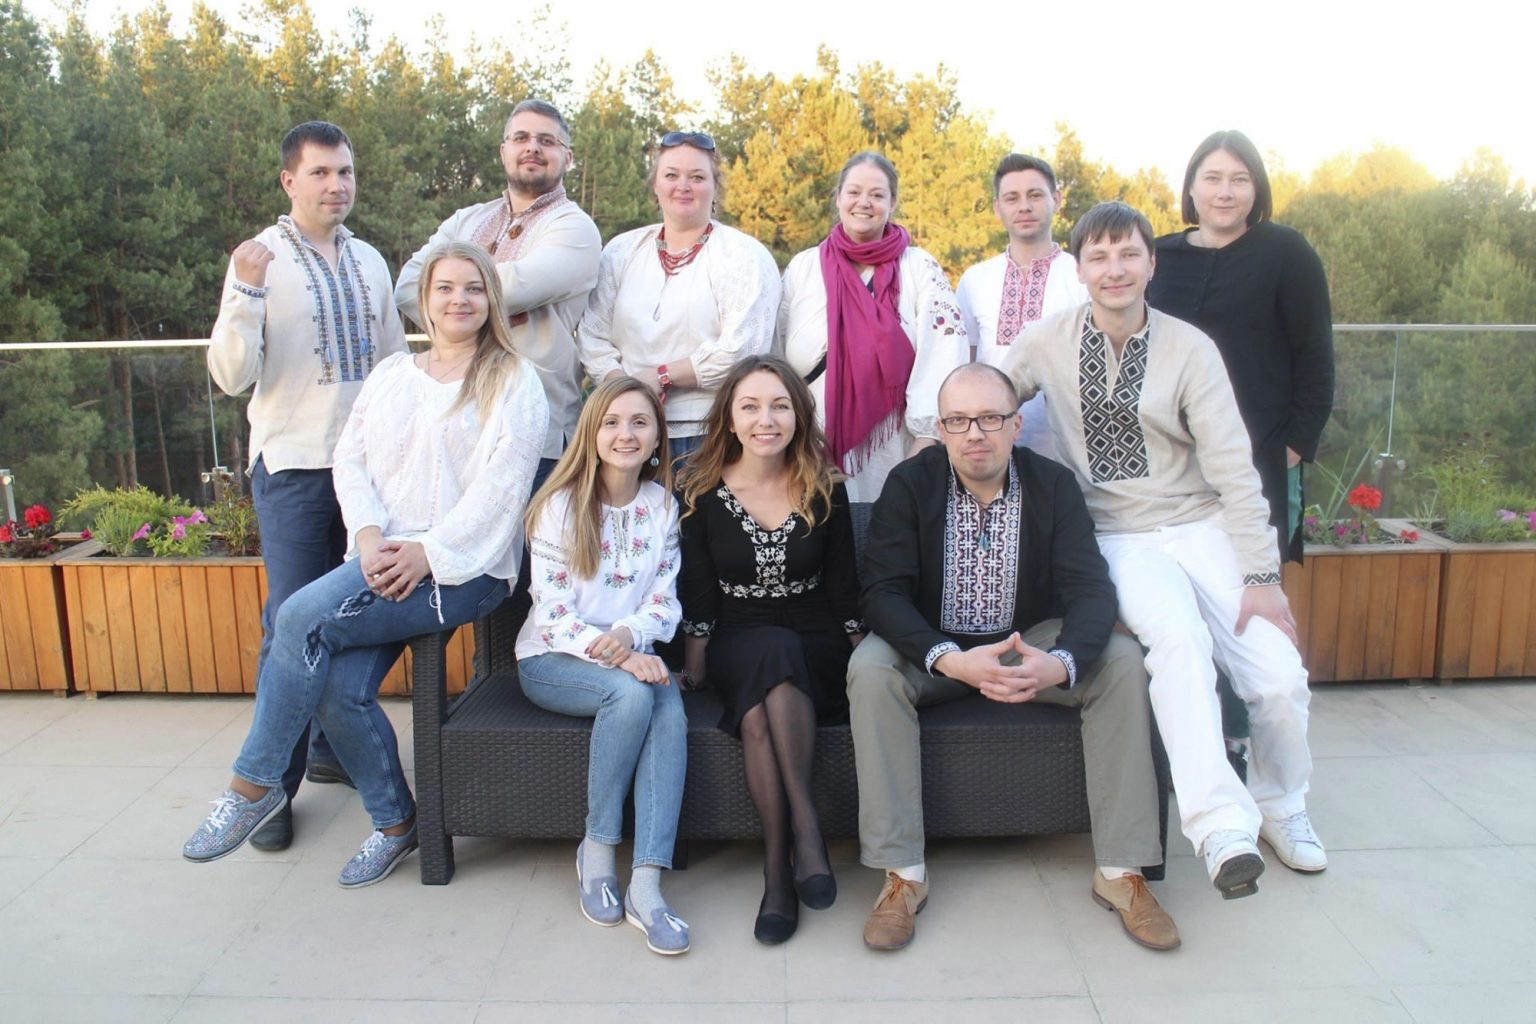 Bezo (back row, third from right) and her CBIE colleagues  from Kyiv, Ukraine during a retreat to build the country's institution of legal aid. The photo was taken on International  Vyshyvanka Day (Ukrainian International Embroidery Day). (Photo courtesy of Larissa Bezo)